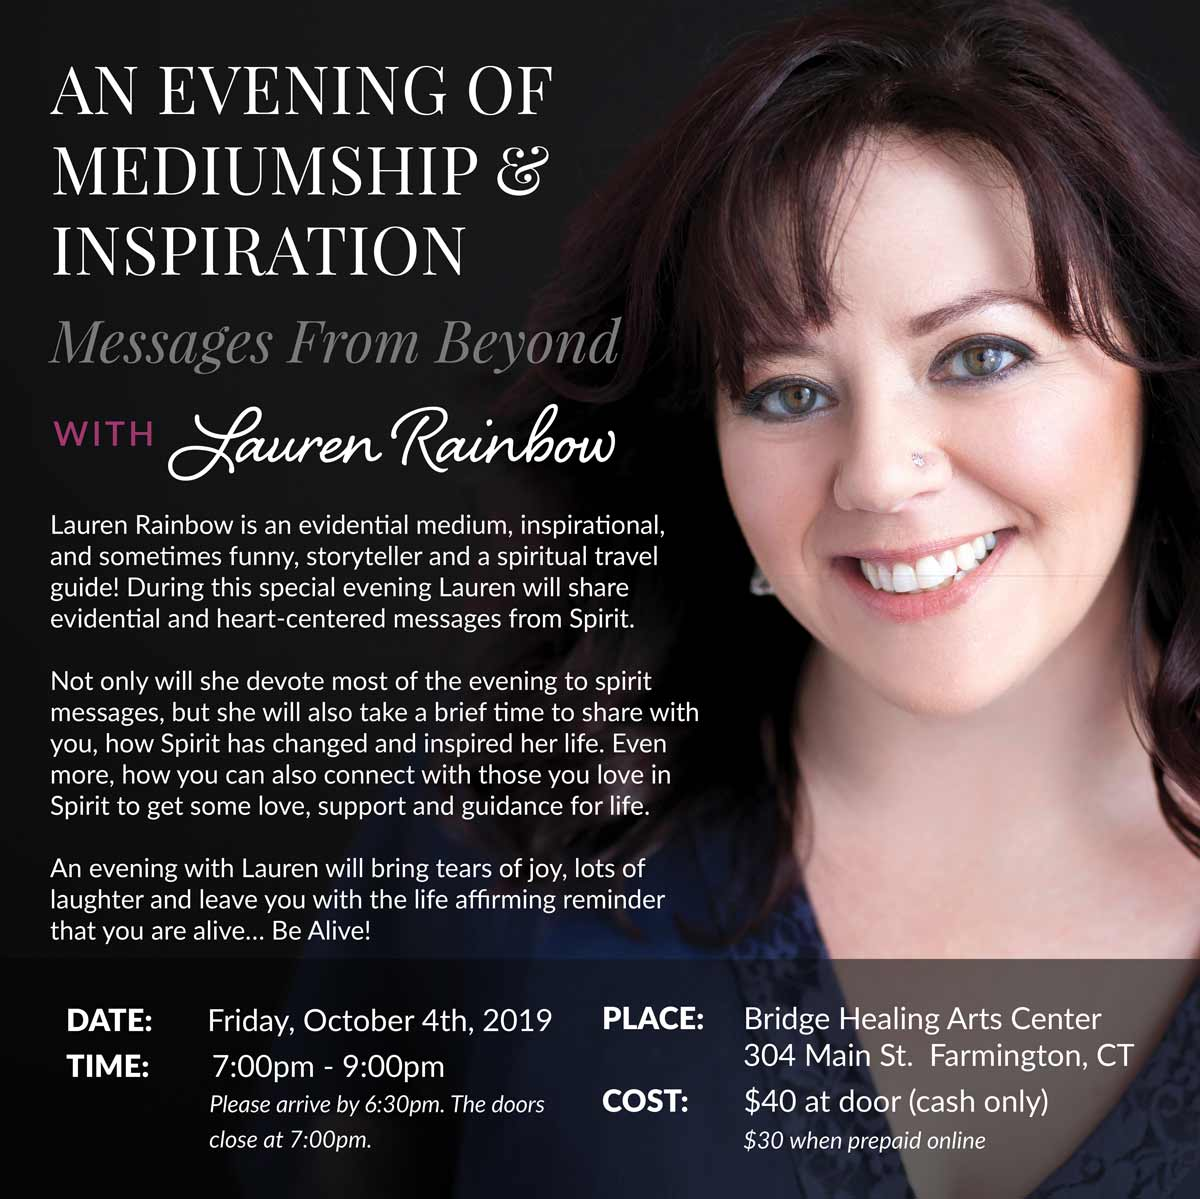 An Evening of Mediumship & Inspiration @ Bridge Healing Arts Center | Farmington | Connecticut | United States